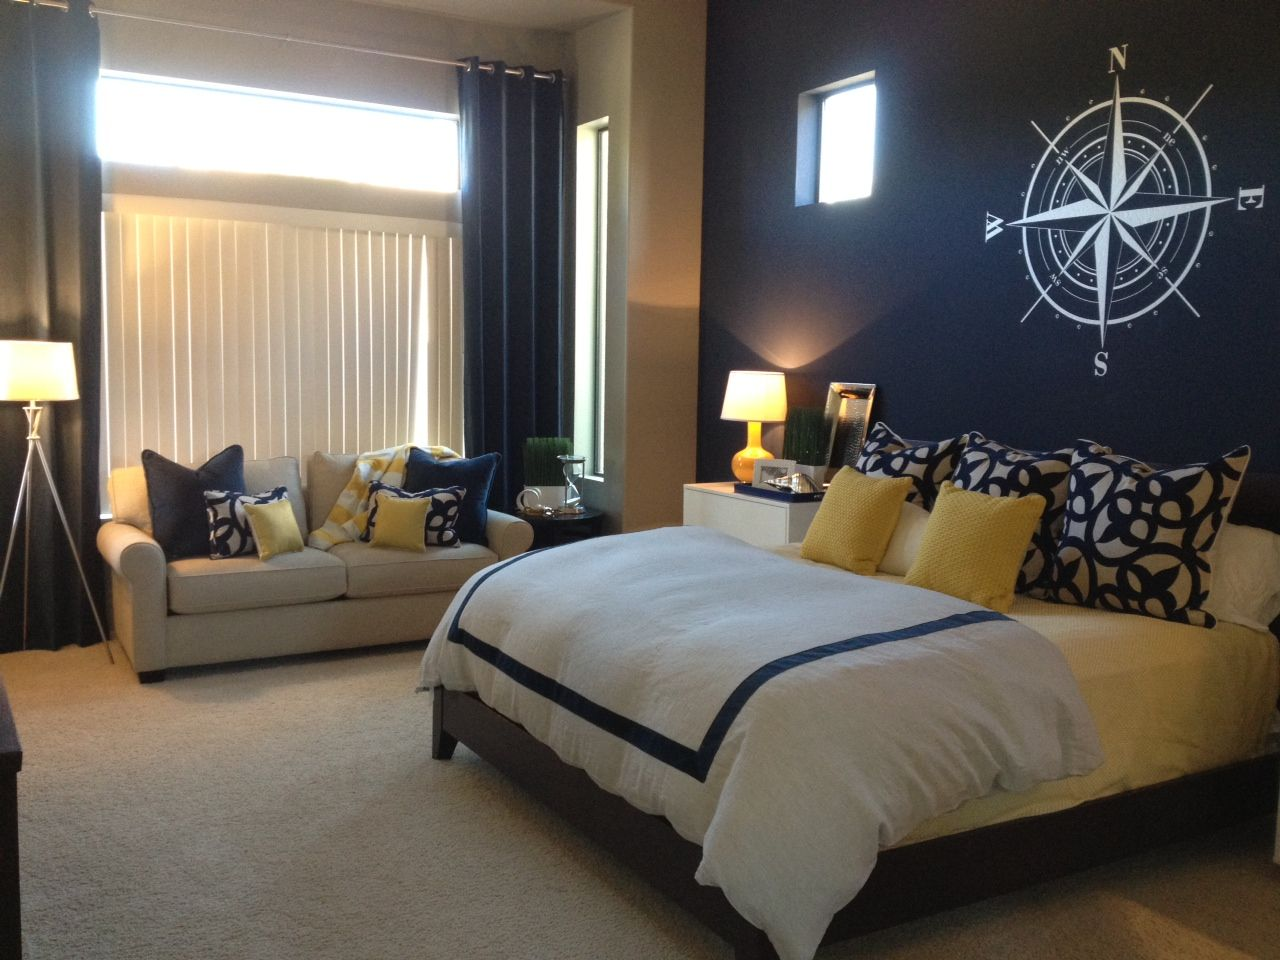 Nautical Bedroom Decor The Magnificent Rooms That Look Luxurious